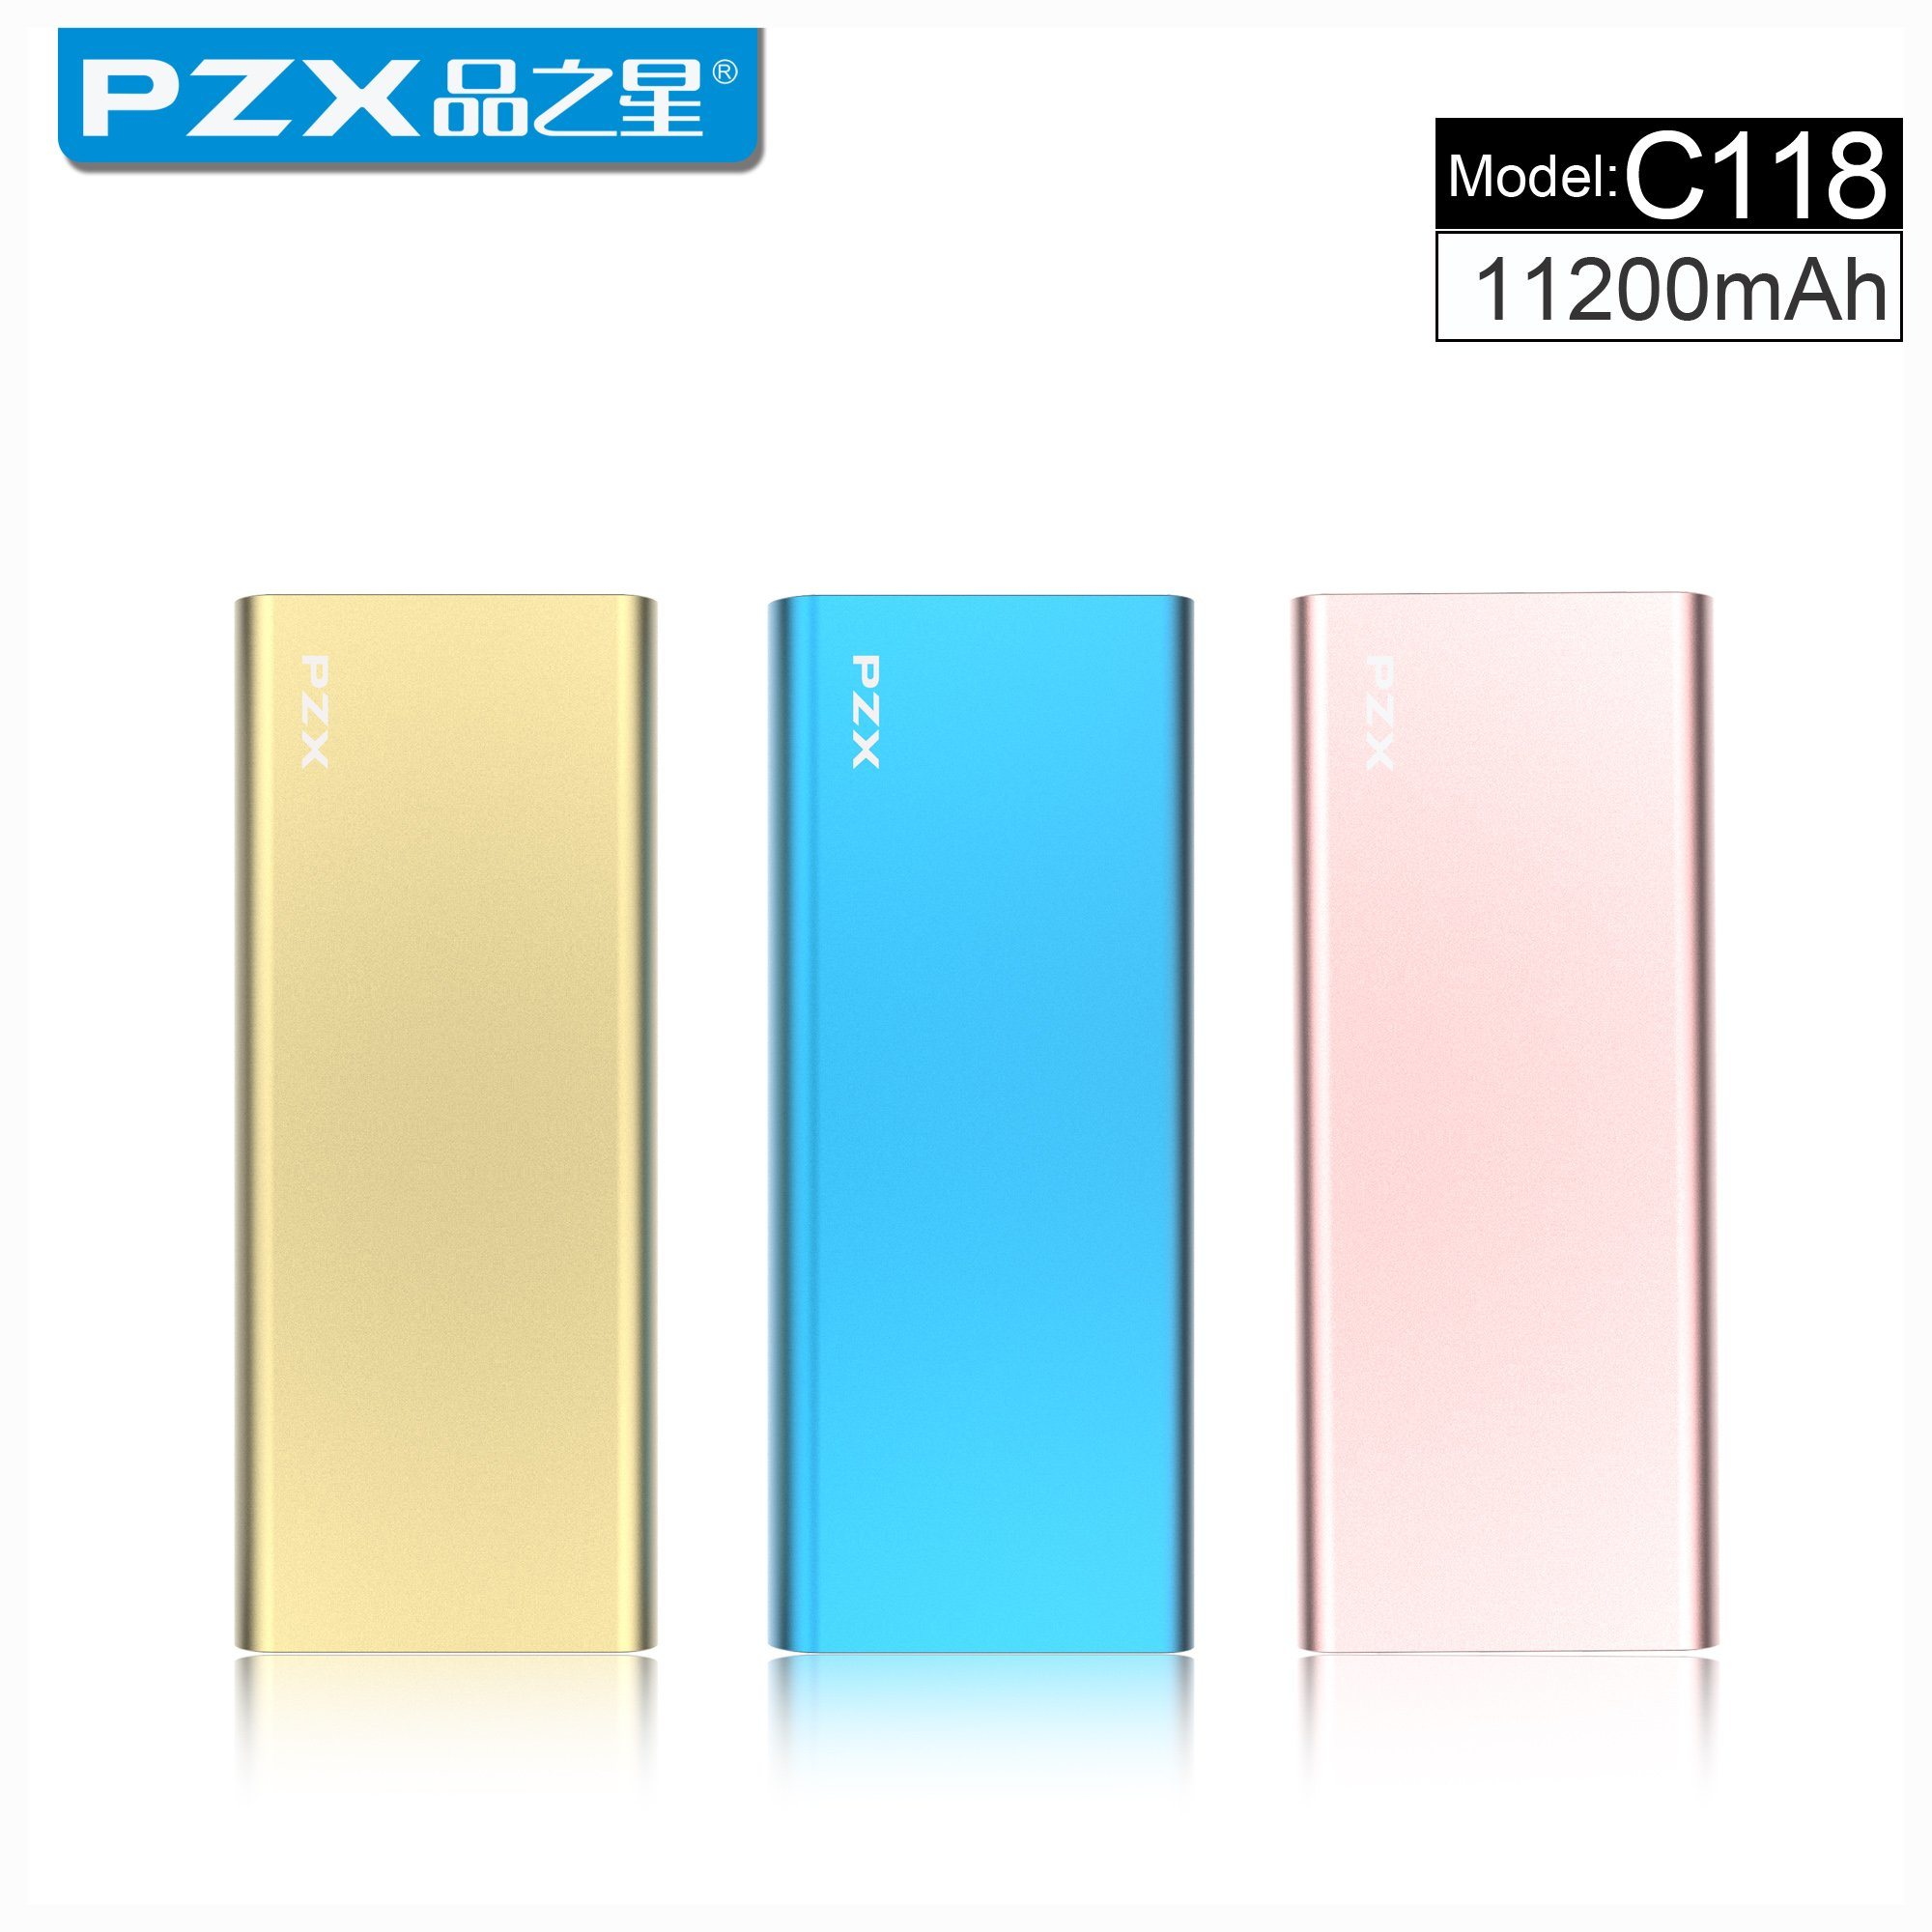 Model Pzx-C118 Power Bank 11200mAh High Quality for Phone